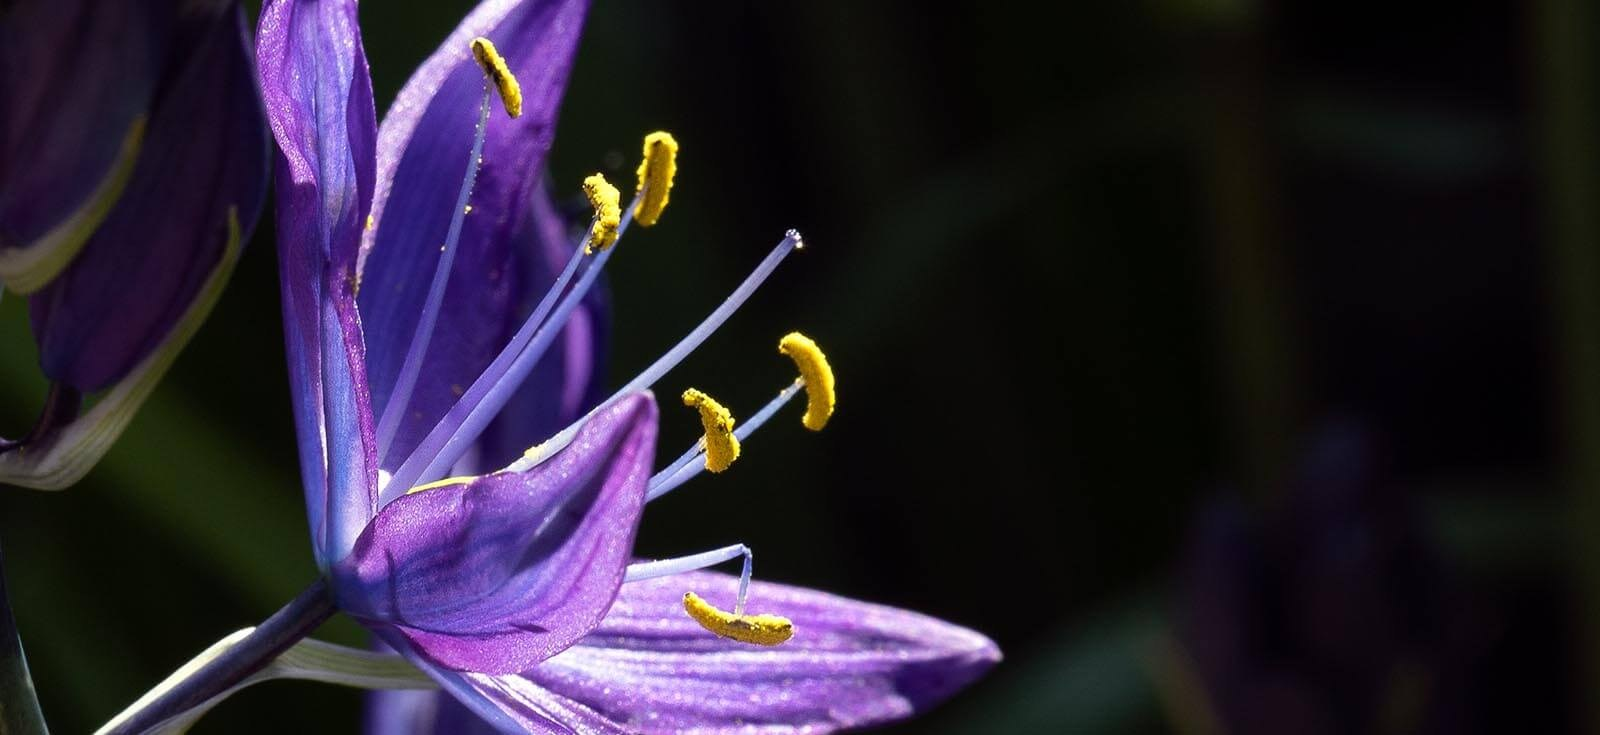 Camas lily photo by Neil Dickie